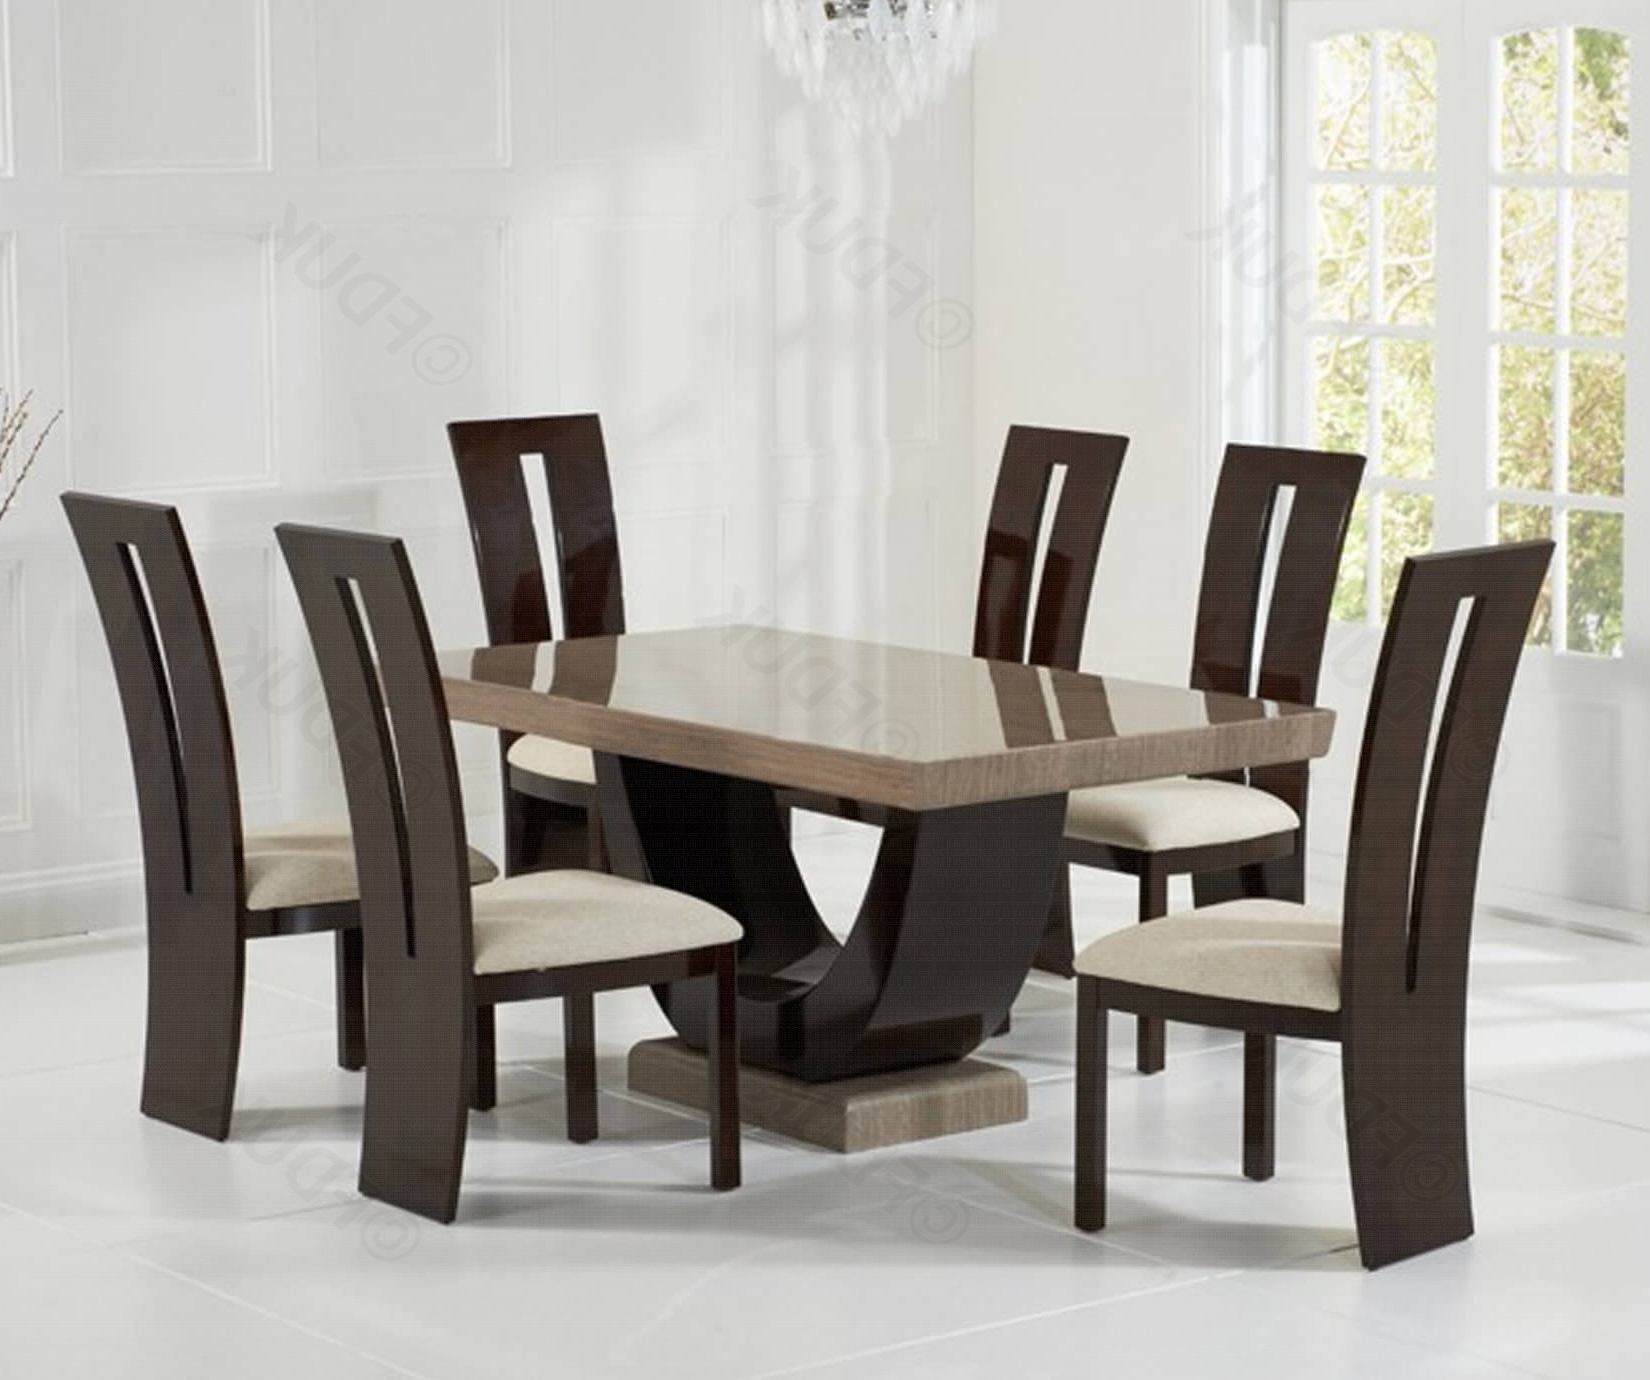 Brown Constituted Marble Dining Set With 6 Pertaining To Marble Dining Chairs (View 24 of 25)